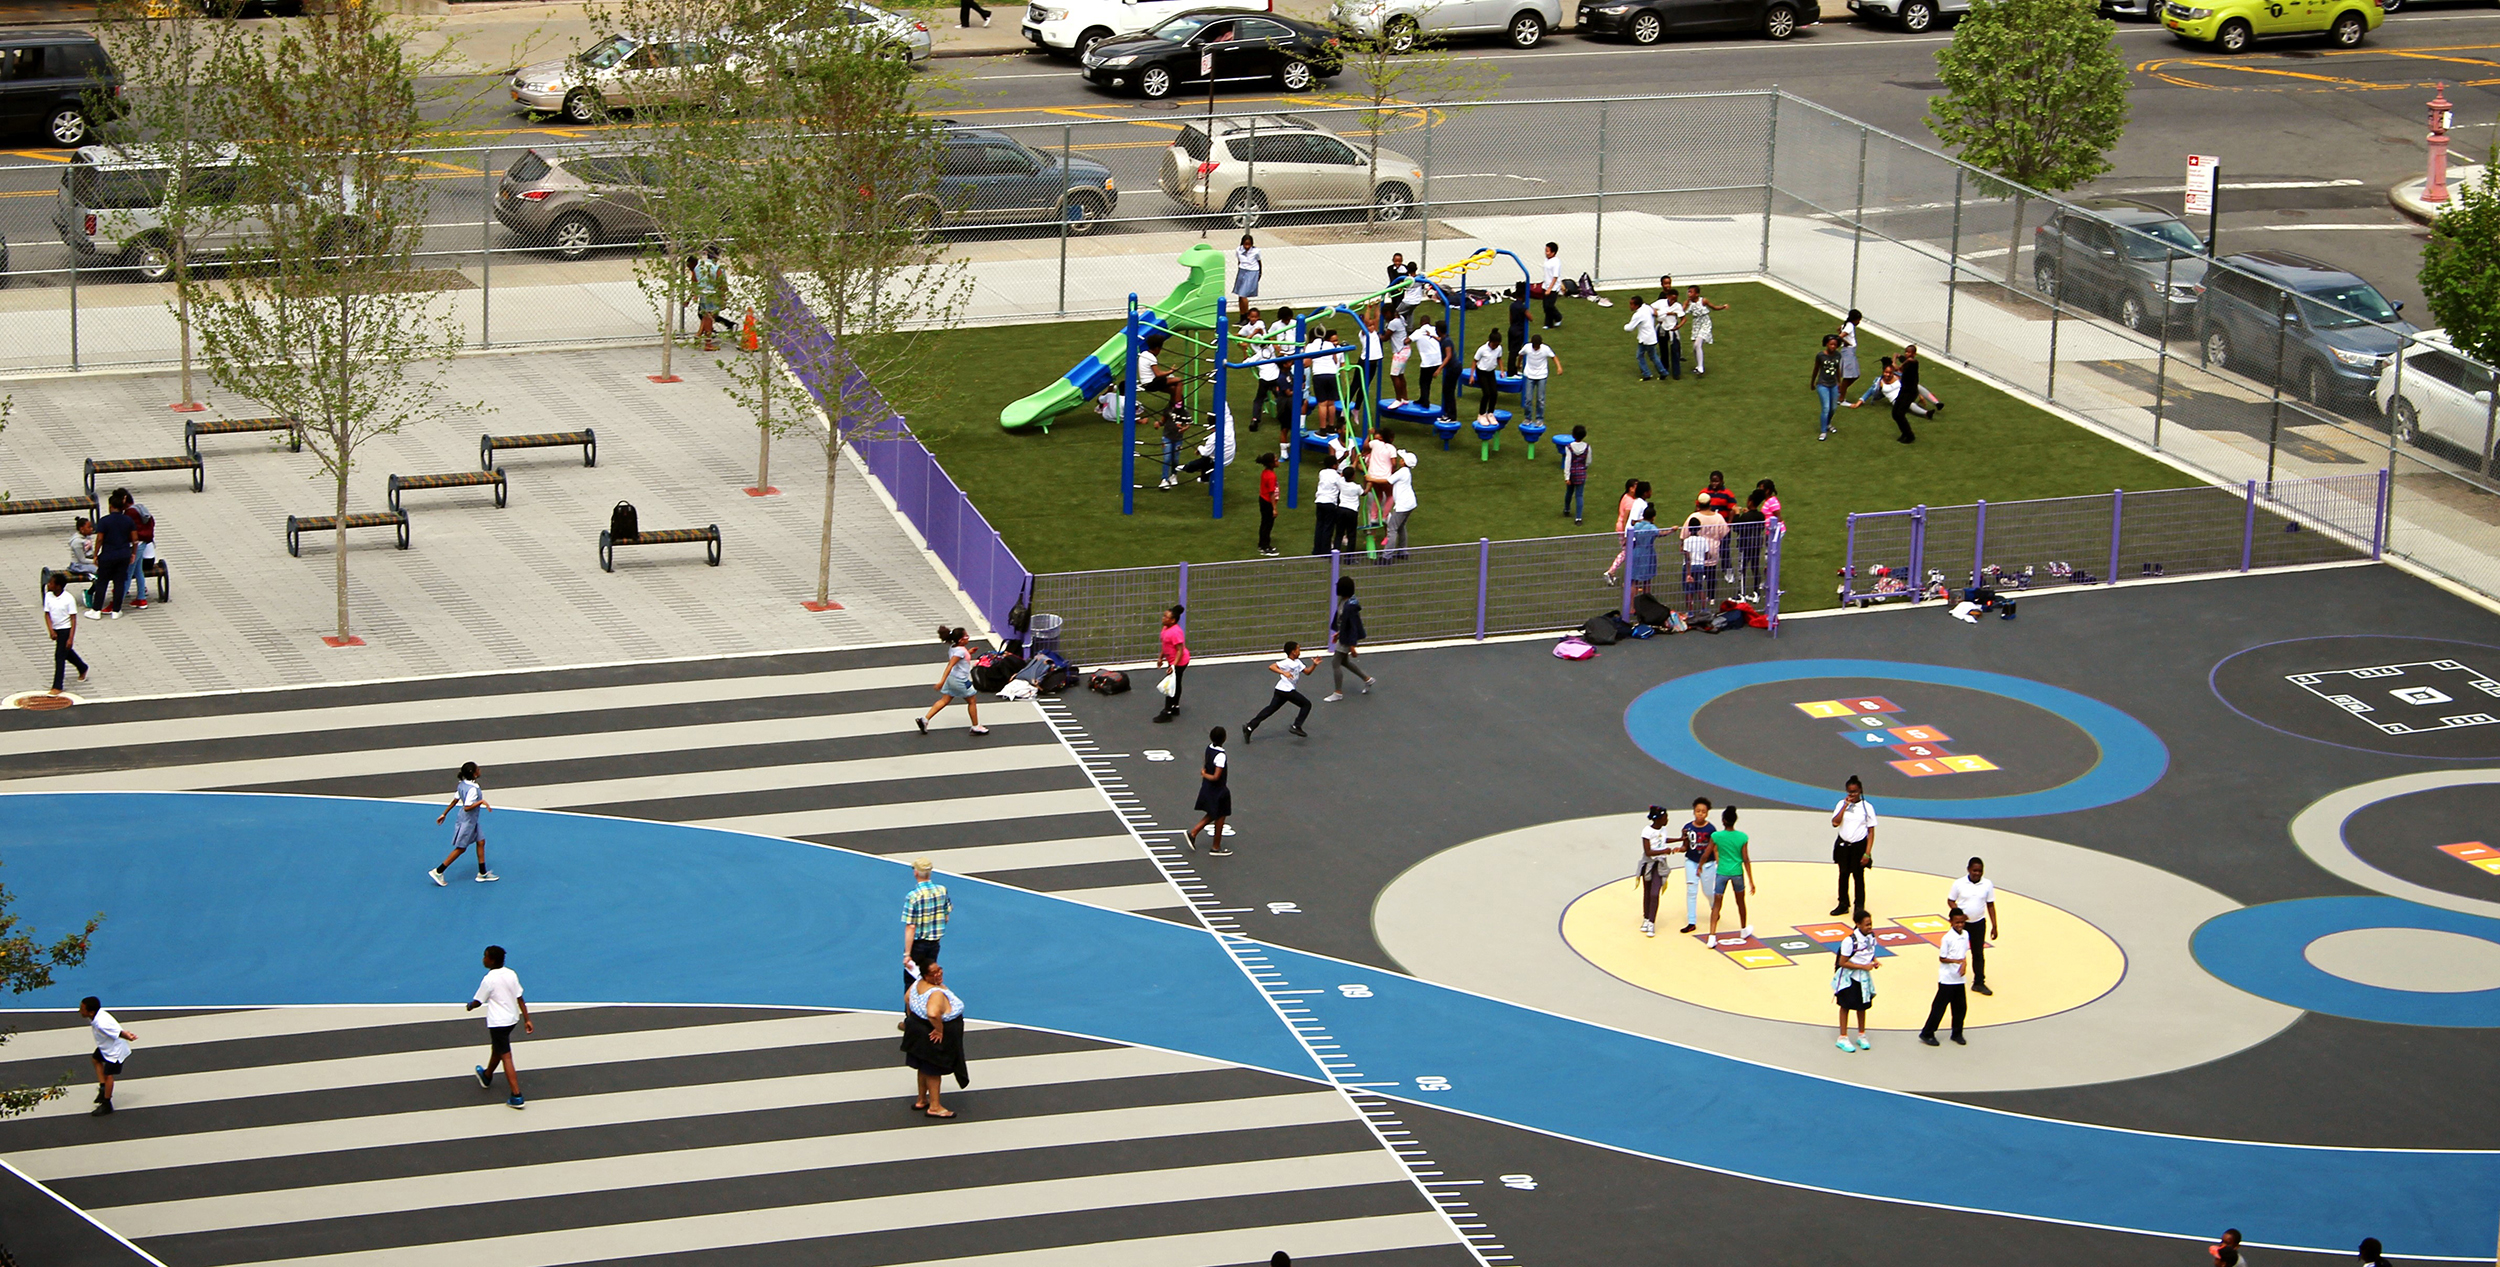 Aerial View of PS 235 K Playground